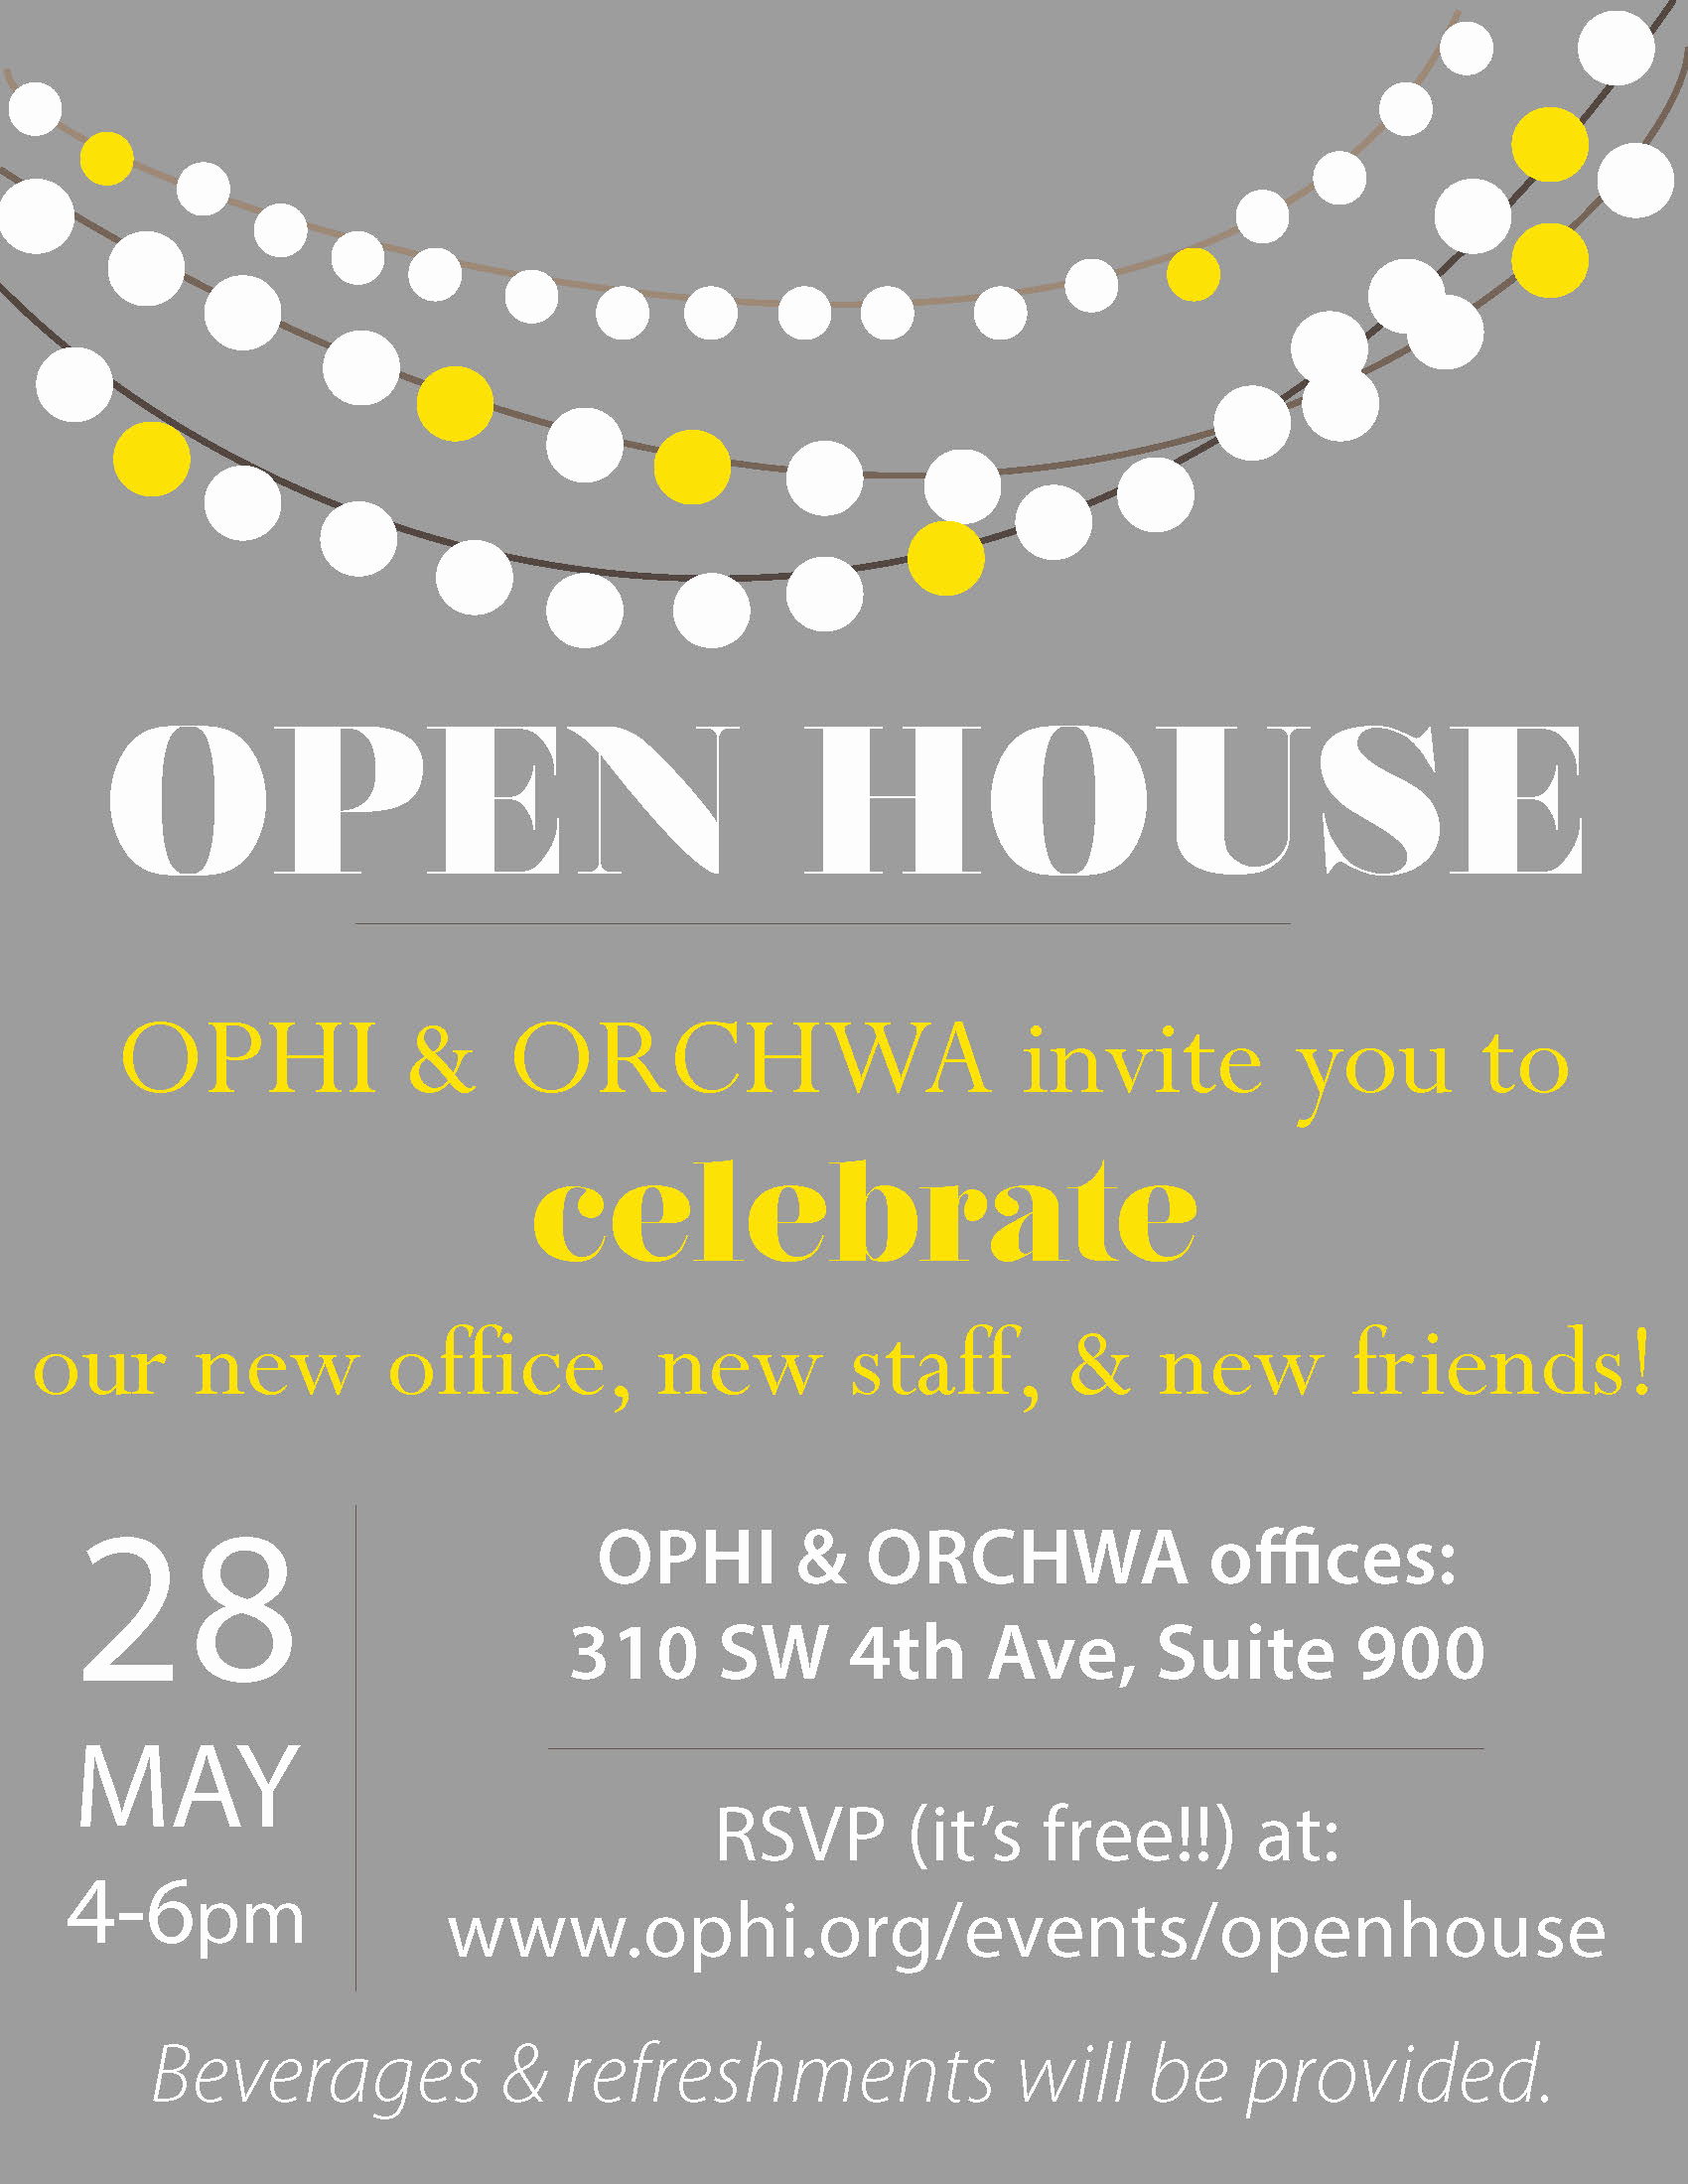 Sample Open House Invitation Elegant Ophi Open House – Ophi